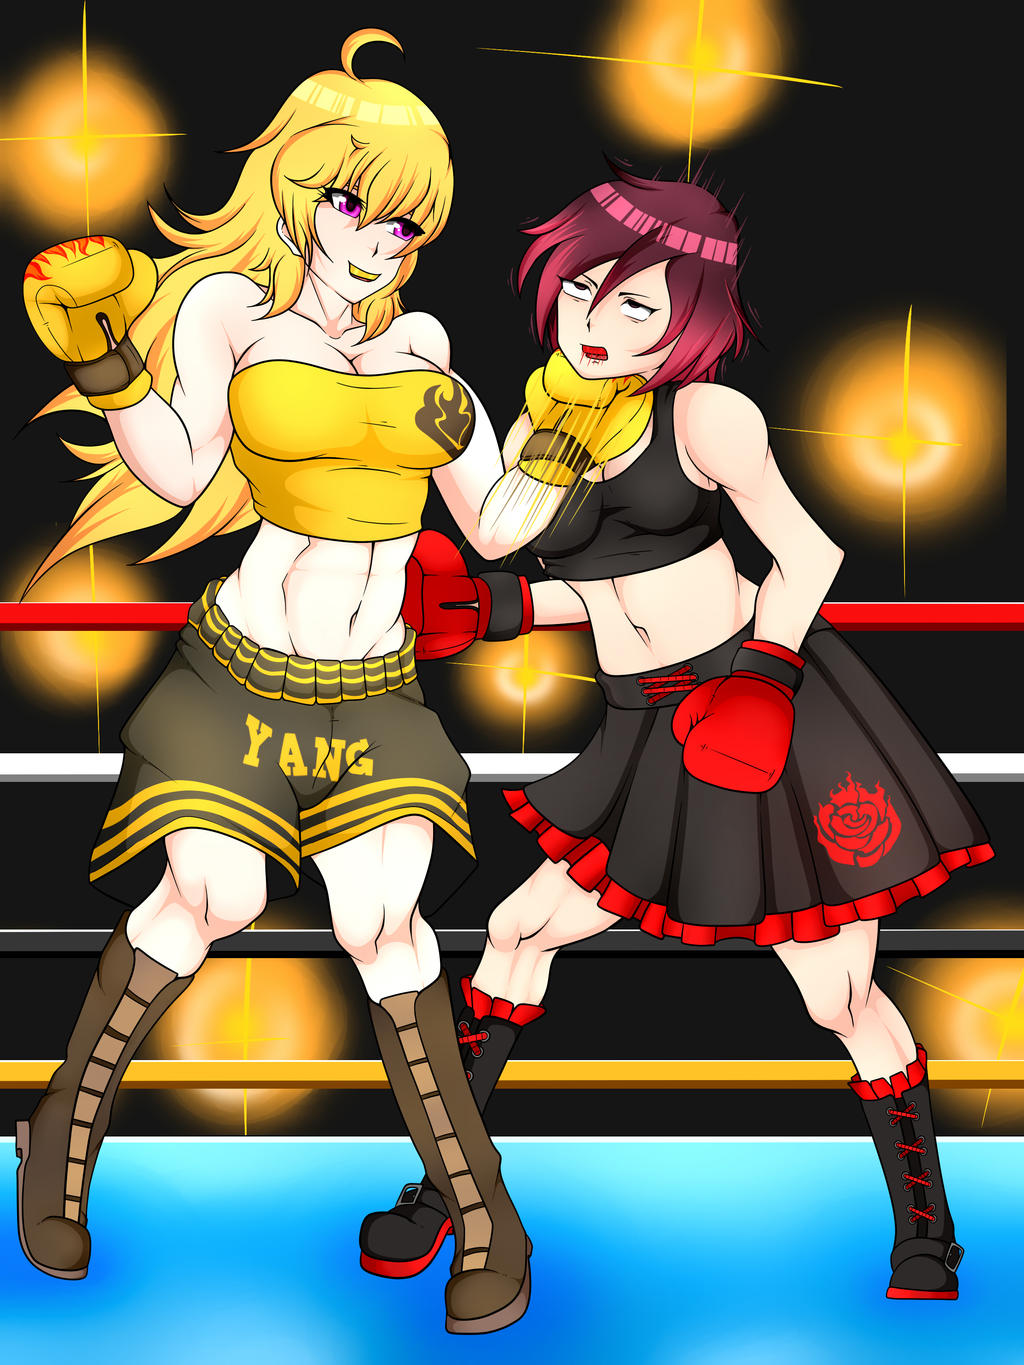 Yang Xiao Long vs. Ruby Rose by 3DBoxing